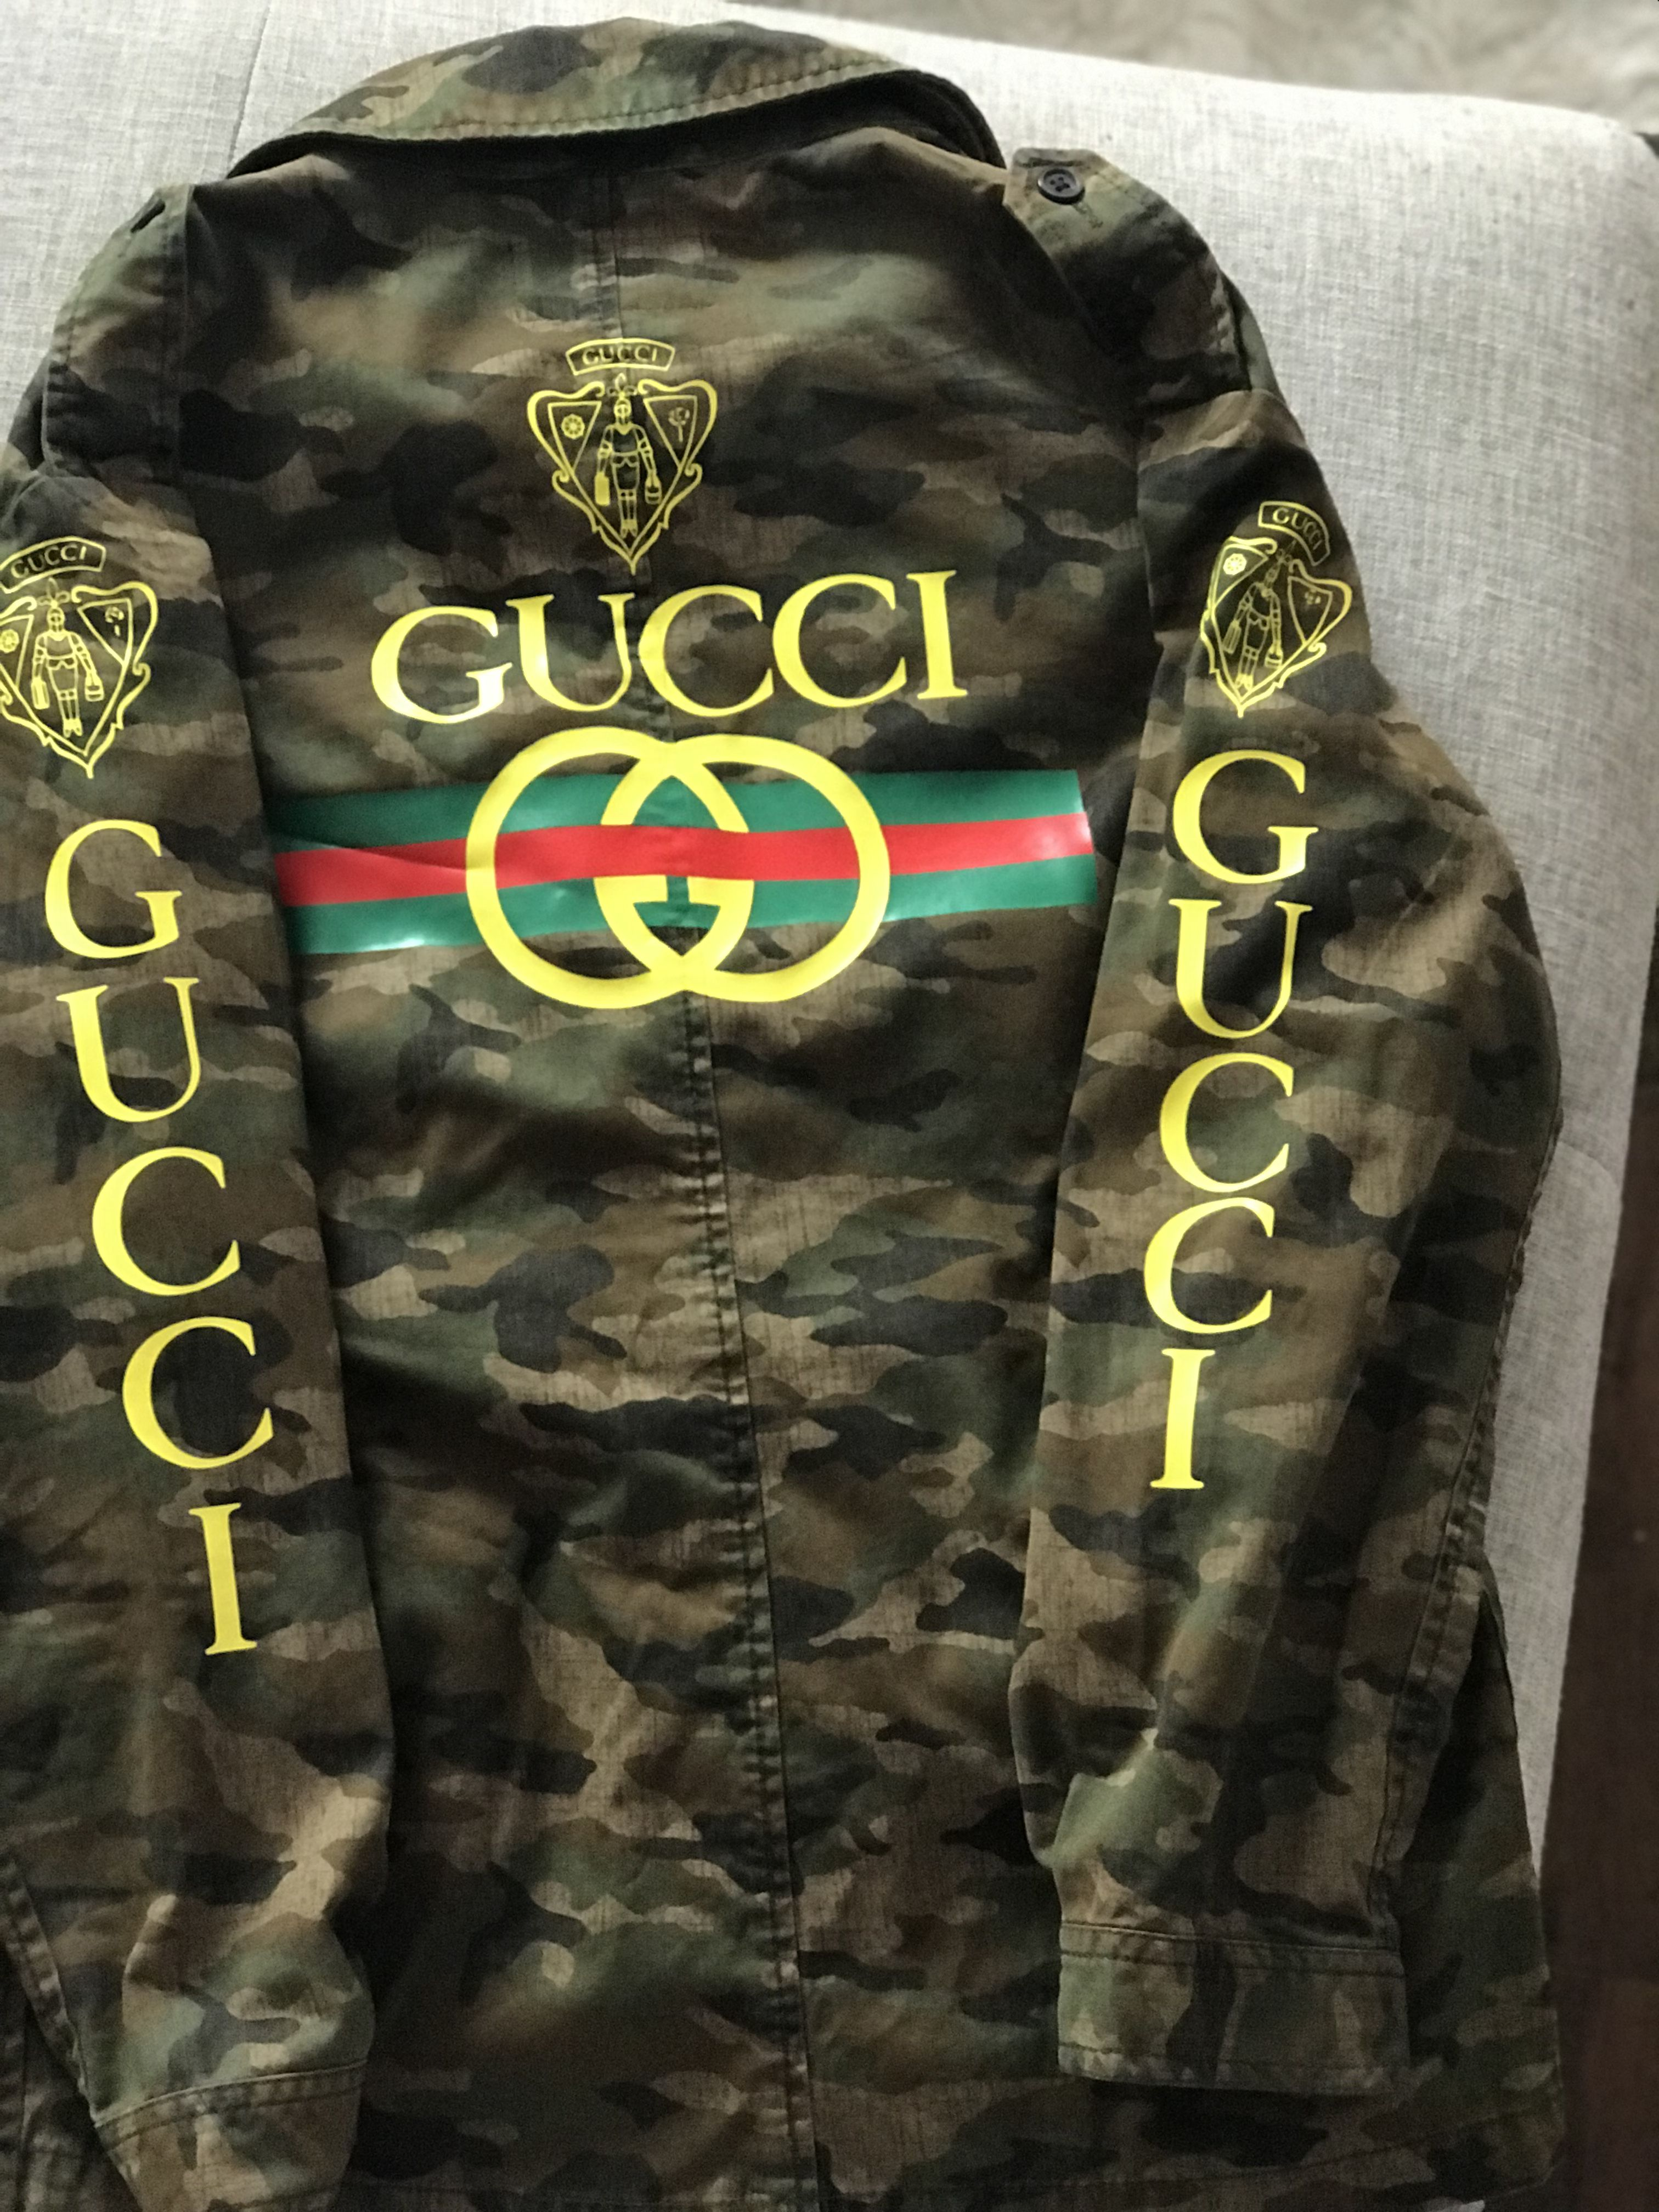 5ae10b400 Vintage Gucci, Vintage Gucci jacket available in women's clothes, men's  designer clothes. Get yours at TillyStylesDesign on Etsy. Sizes small,  medium, large ...